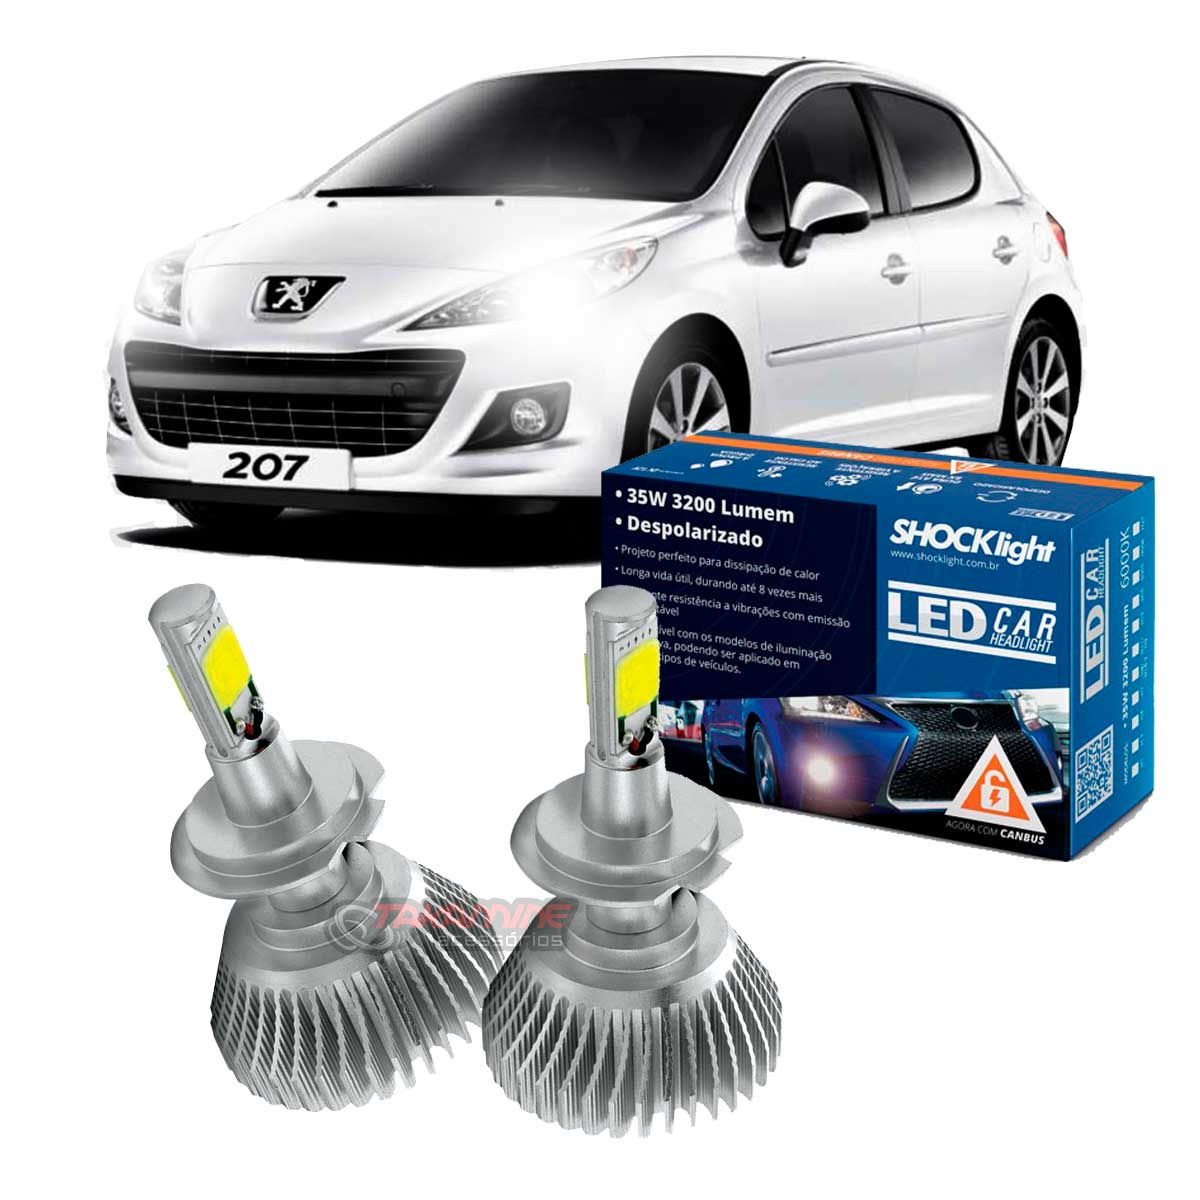 Kit LED Peugeot 207 tipo xenon Farol baixo H7 35W Headlight